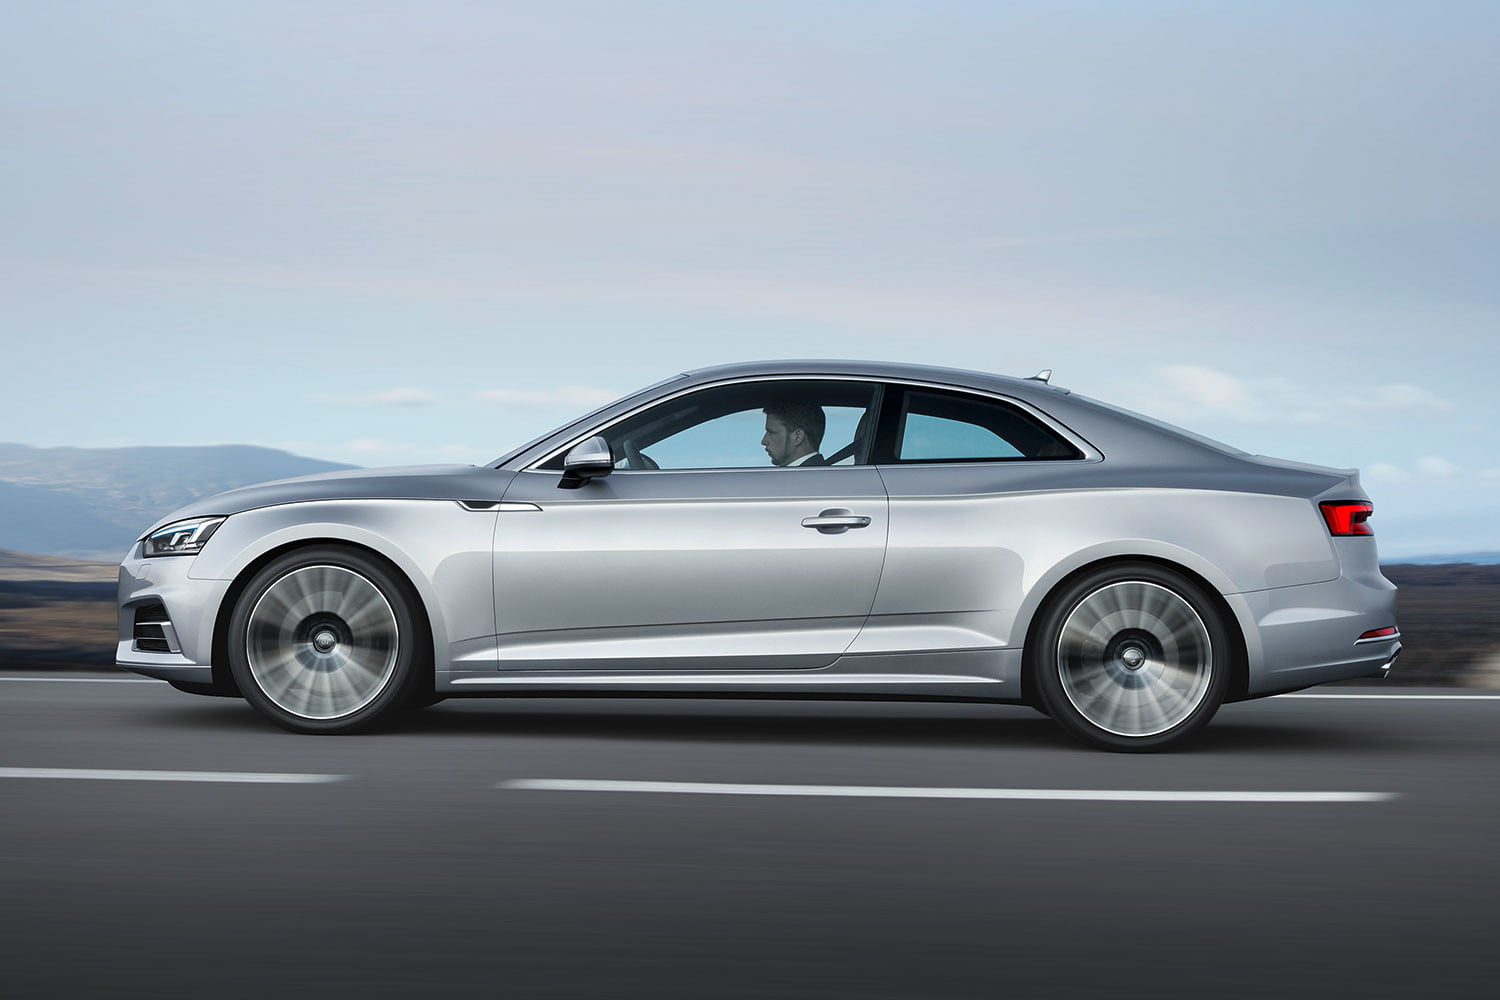 2017 audi a5 news pictures specs performance coupe 009